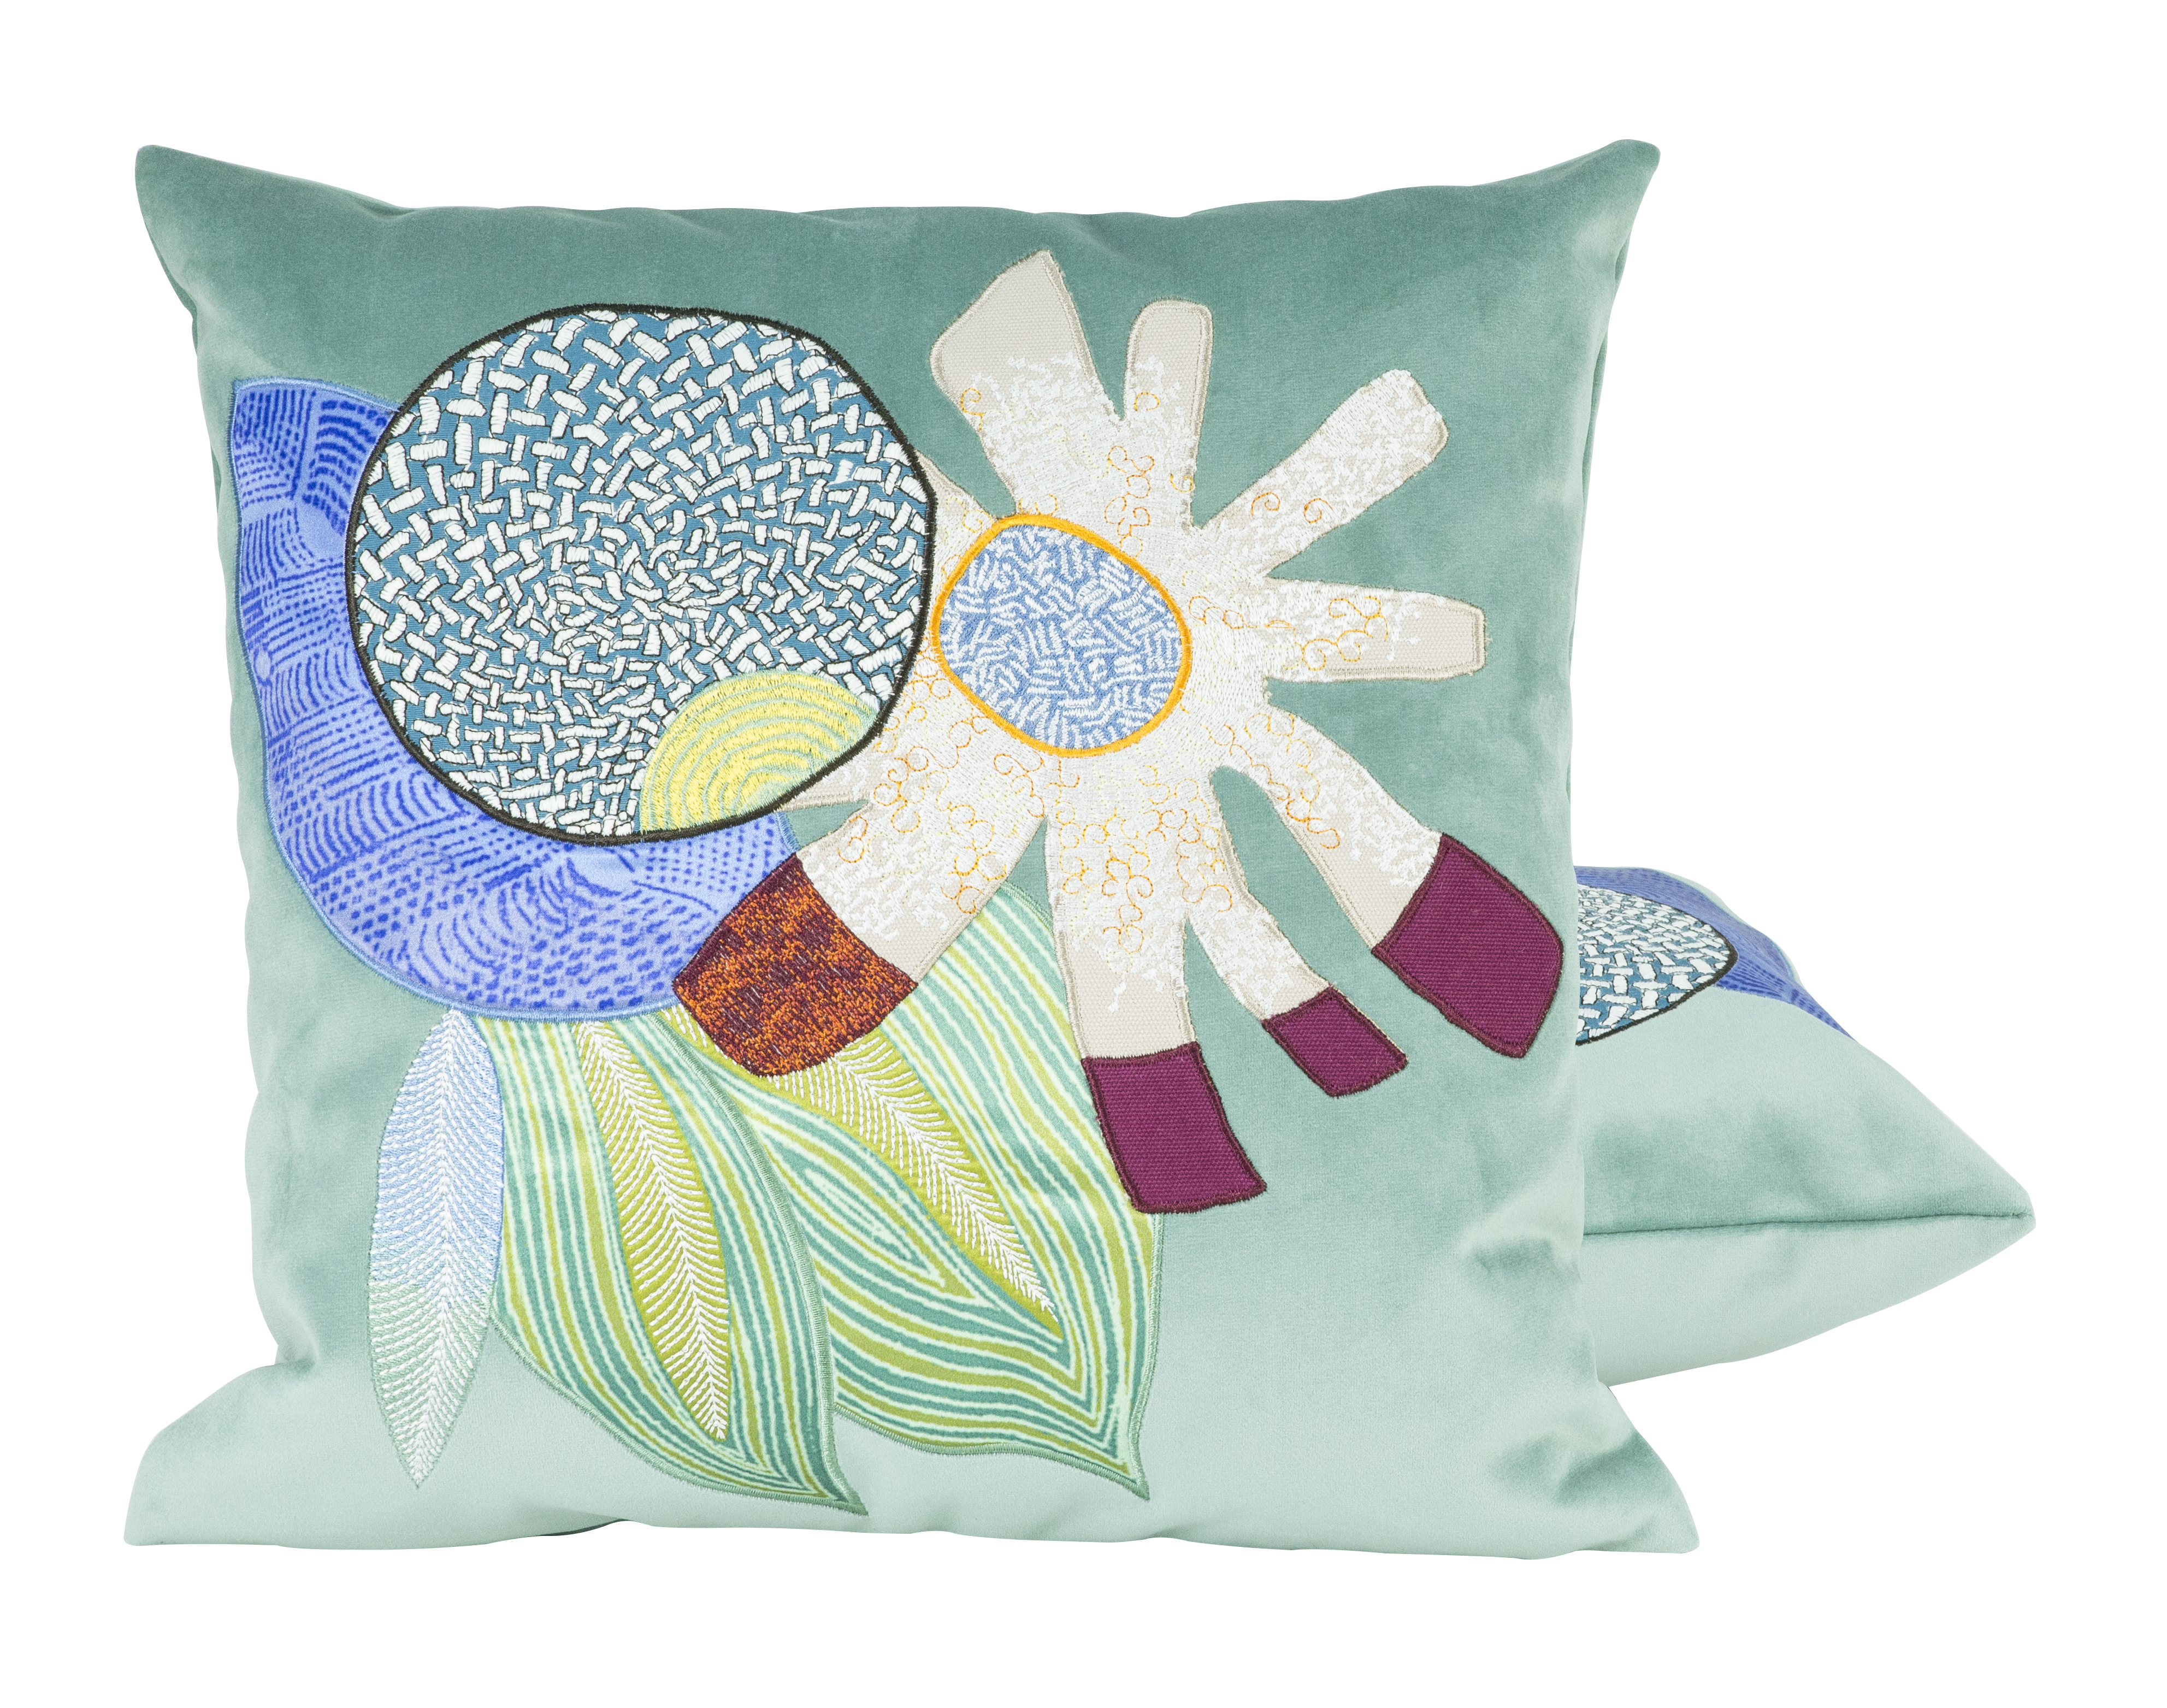 'Libertad' cushion by Lelièvre Paris, from the 'Evasions' collection. 100% Polyester, 40 x 40cm, £95.